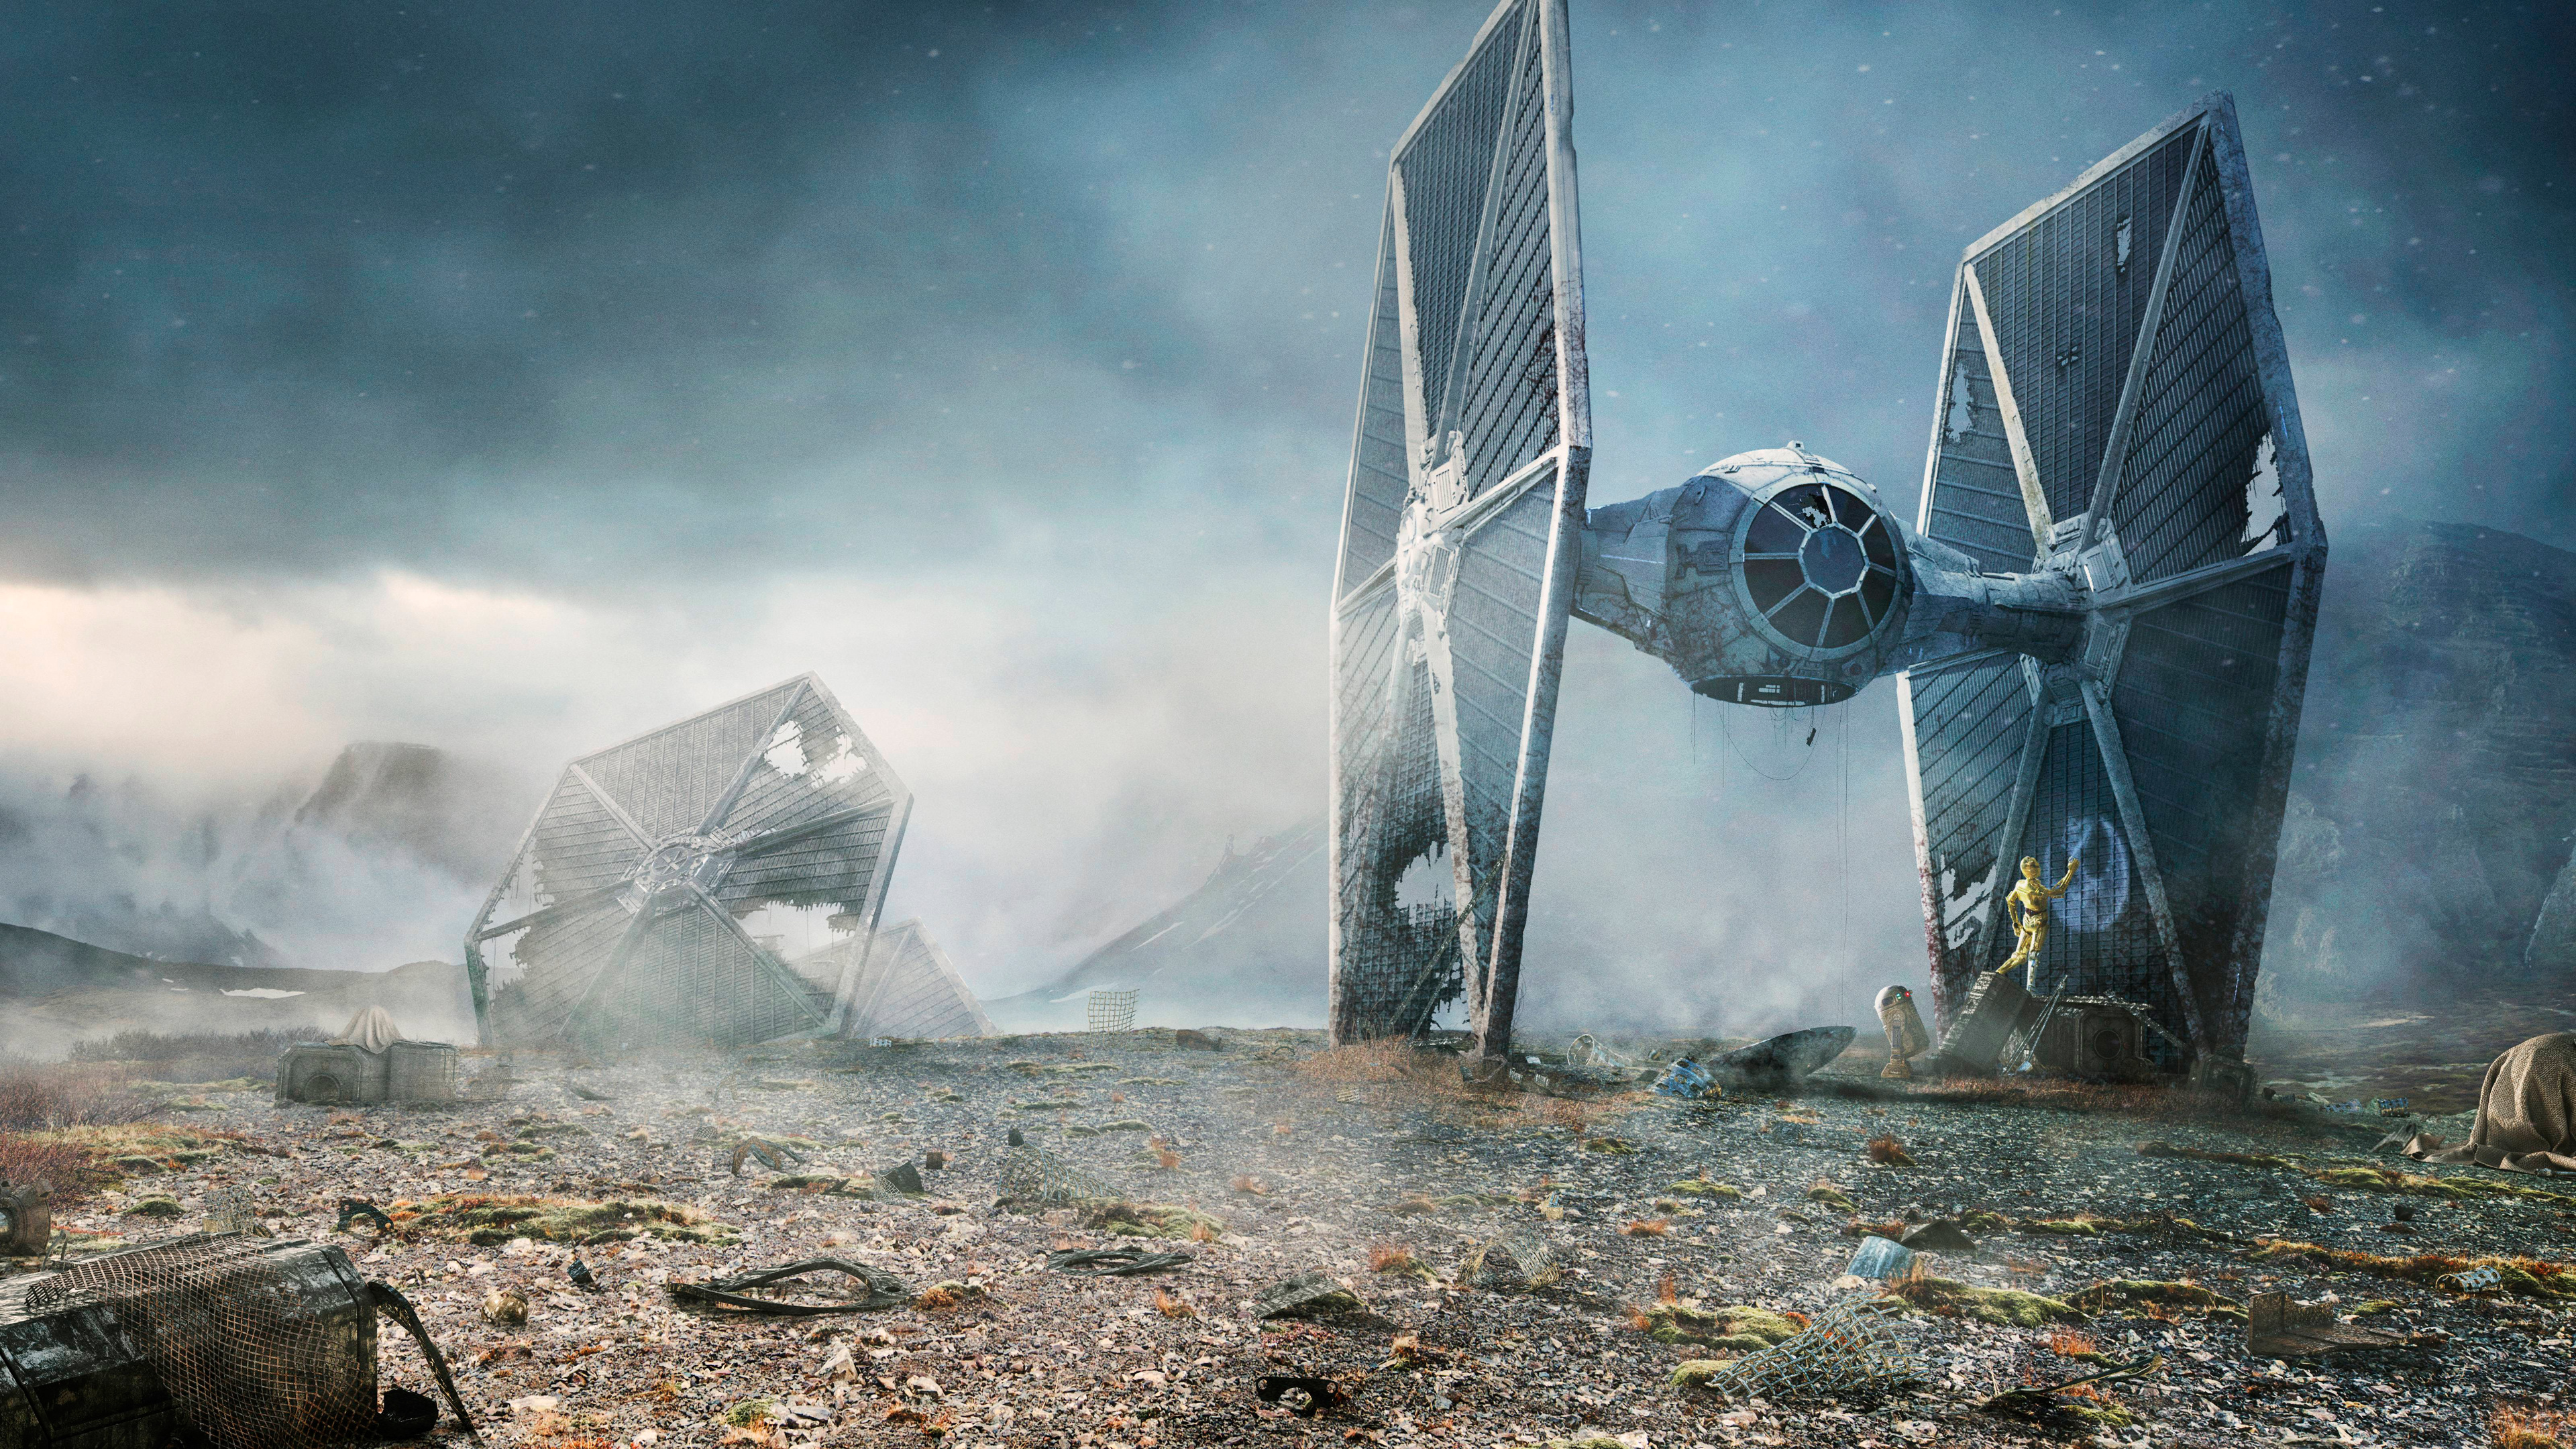 3840x2160 Tie Fighter Star Wars 4k Wallpaper Hd Movies 4k Wallpapers Images Photos And Background